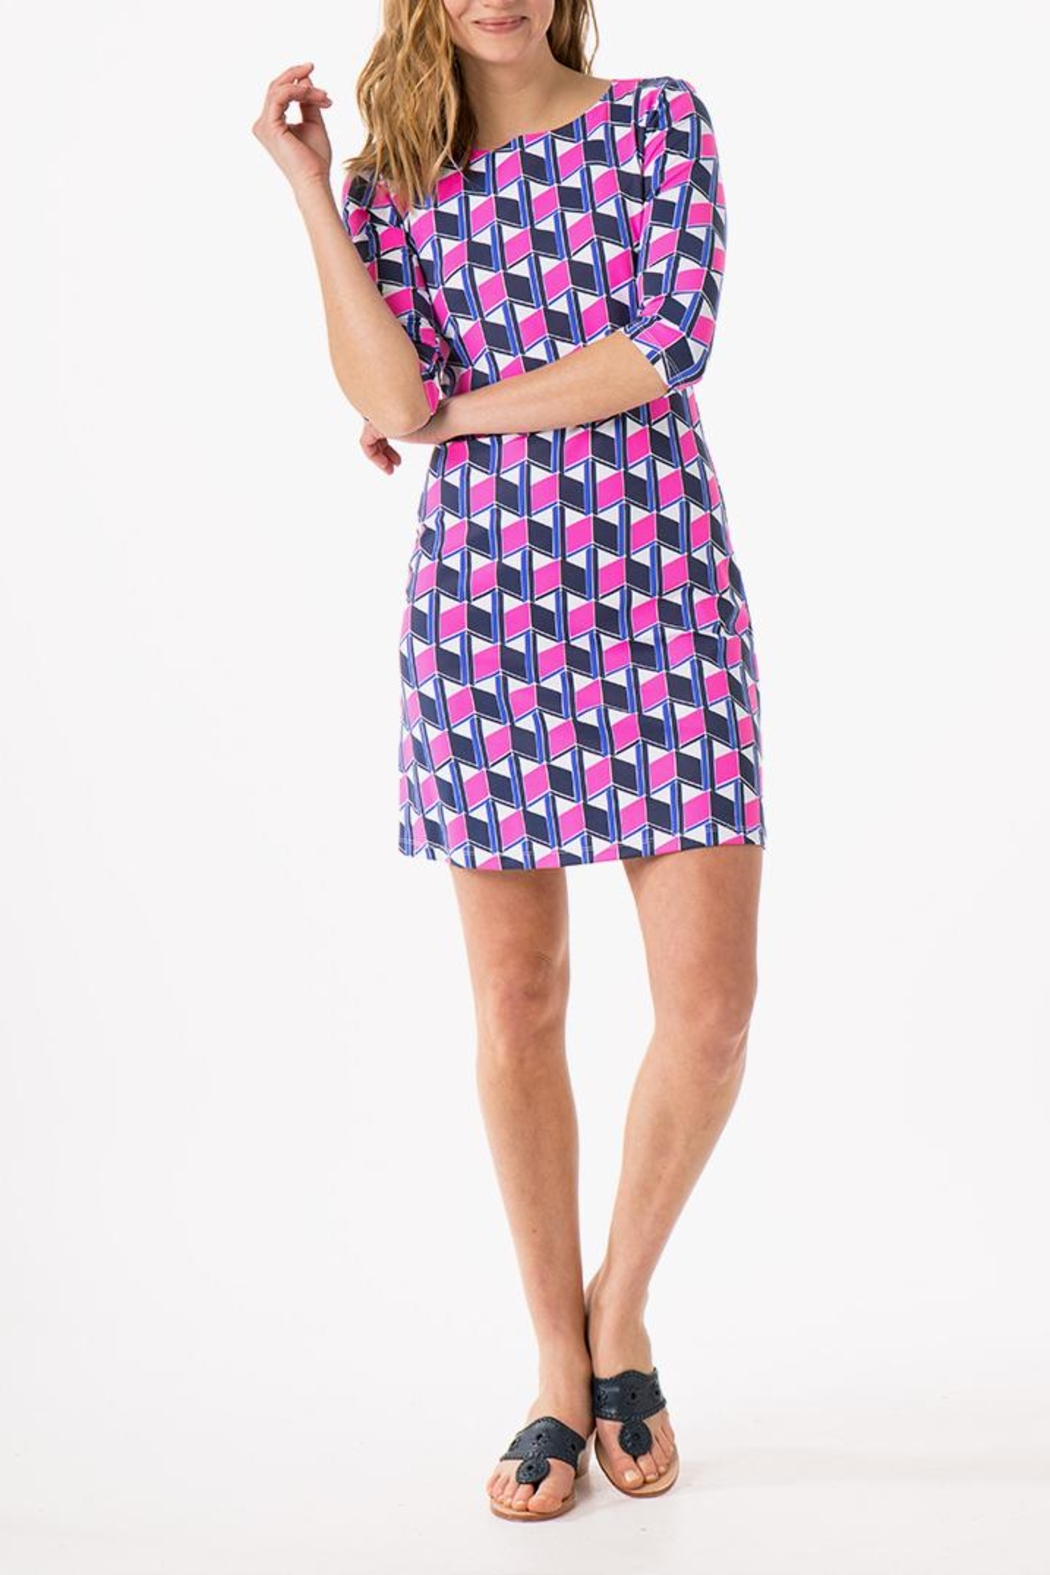 Mahi Gold Bimini Print Dress - Back Cropped Image